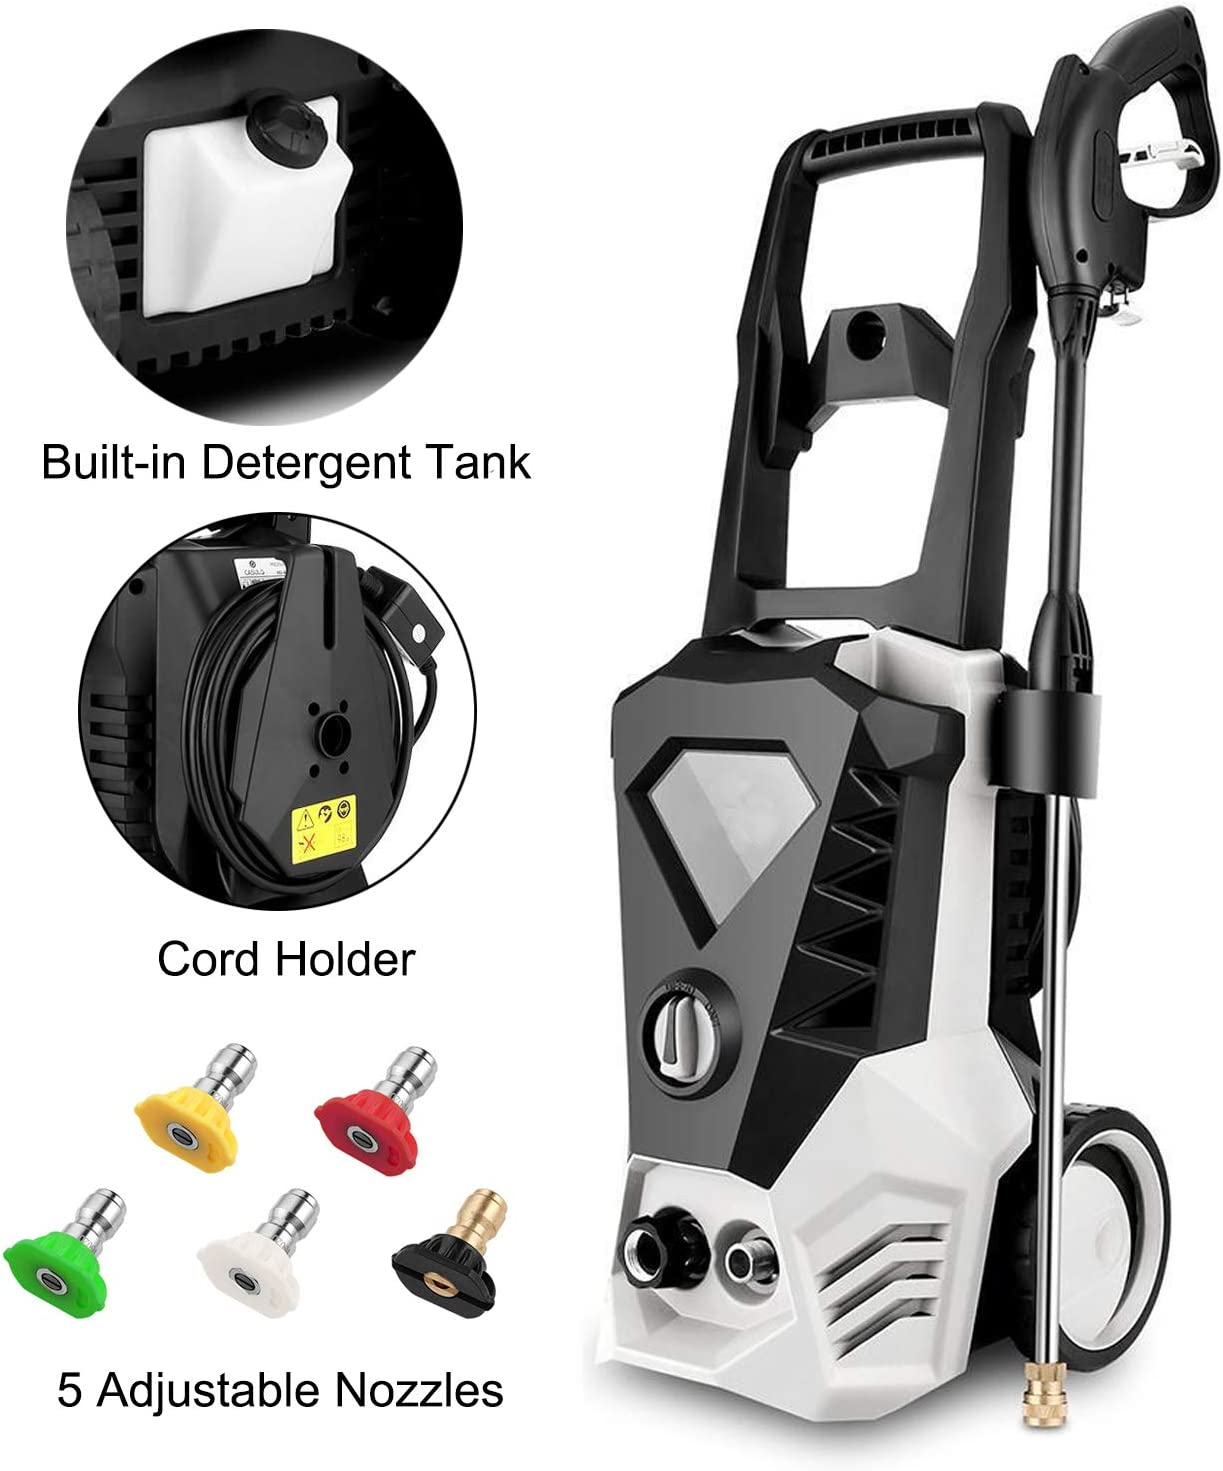 Hopekings Electric Pressure Washer Power Washer 3500PSI 2.6GPM Cleaner Machine with Power Hose Gun & 5 Interchangeable Nozzles, Suitable for Home, Garden, Patio, Cars (White)